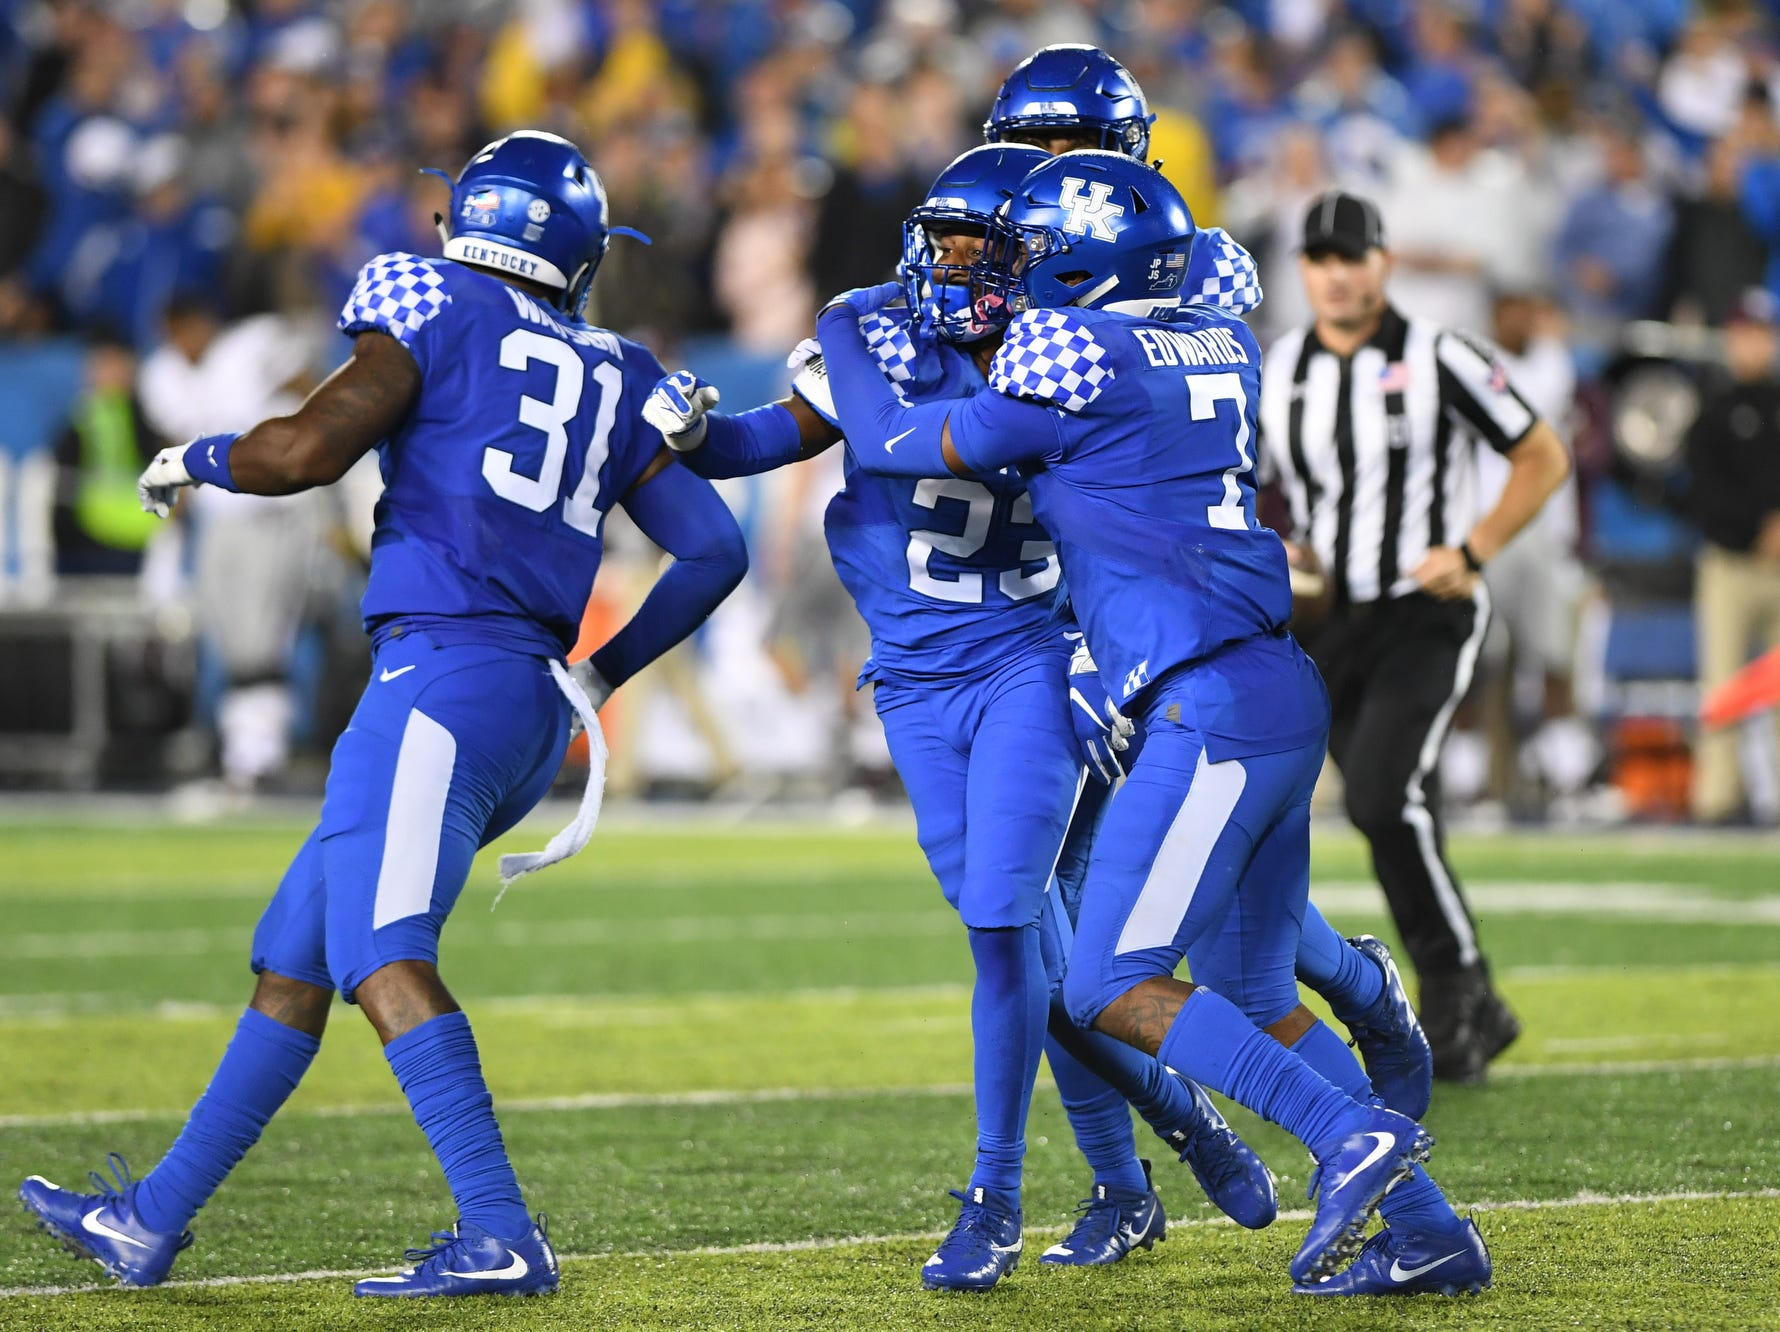 UK SS Tyrell Ajian is congratulated by teammates after intercepting the ball against Mississippi State at Kroger Field in Lexington, Kentucky on Saturday, September 22, 2018.